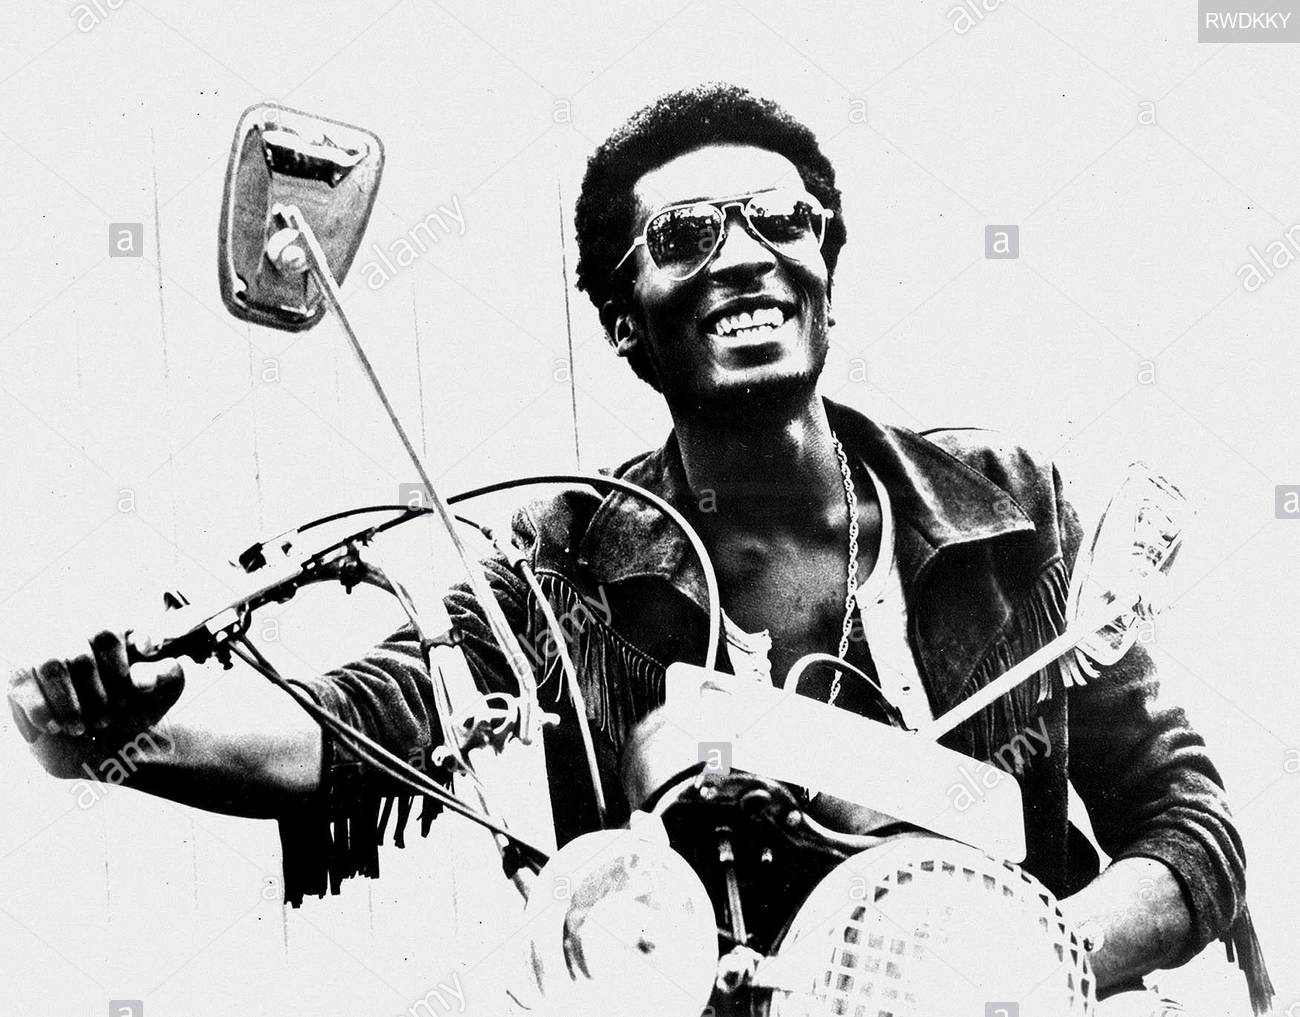 jimmy-cliff-the-harder-they-come-1972-RWDKKY